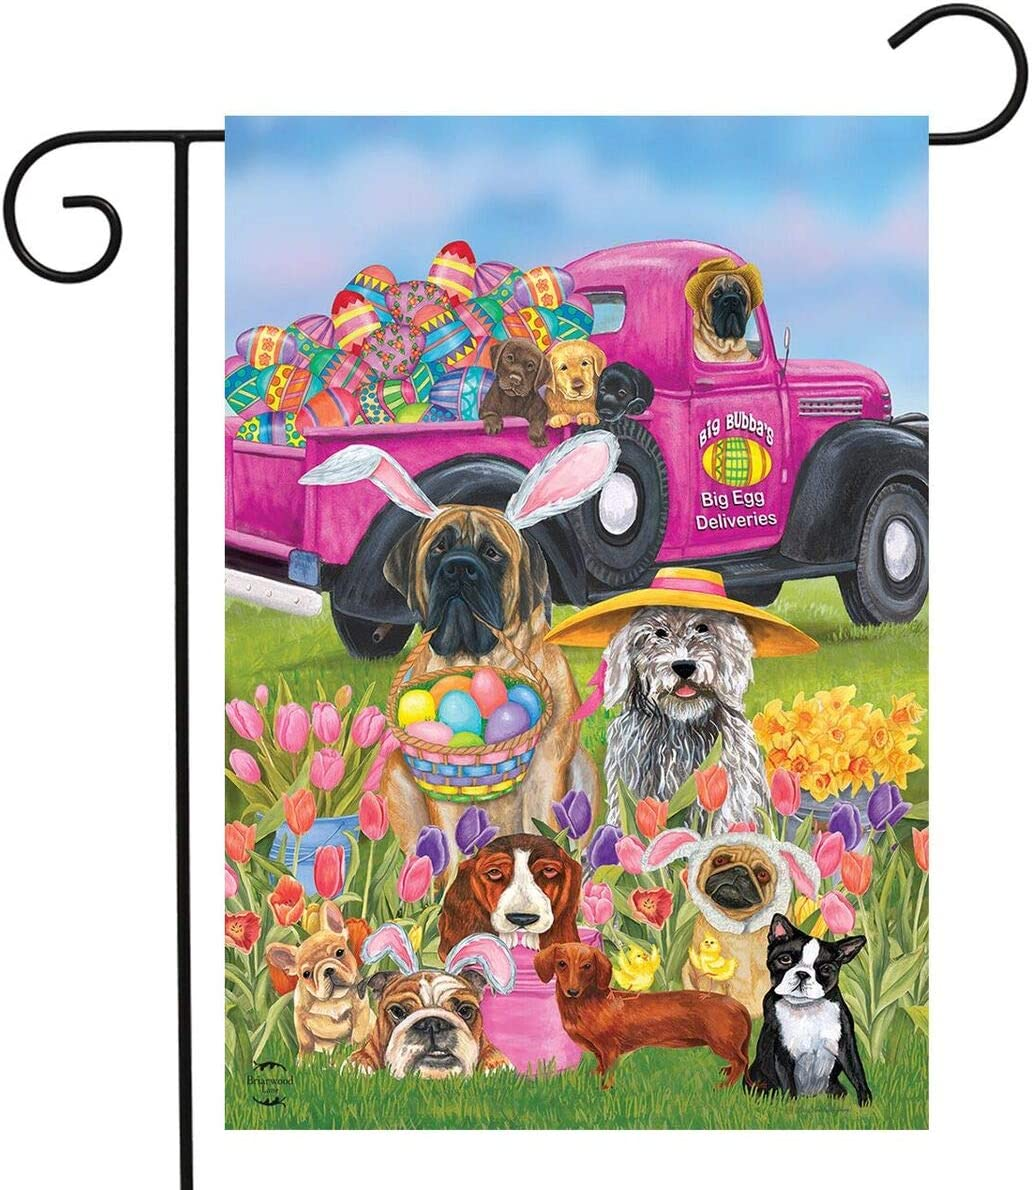 Briarwood Lane Easter Dogs Holiday Humor Garden Flag Decorated Eggs 12.5